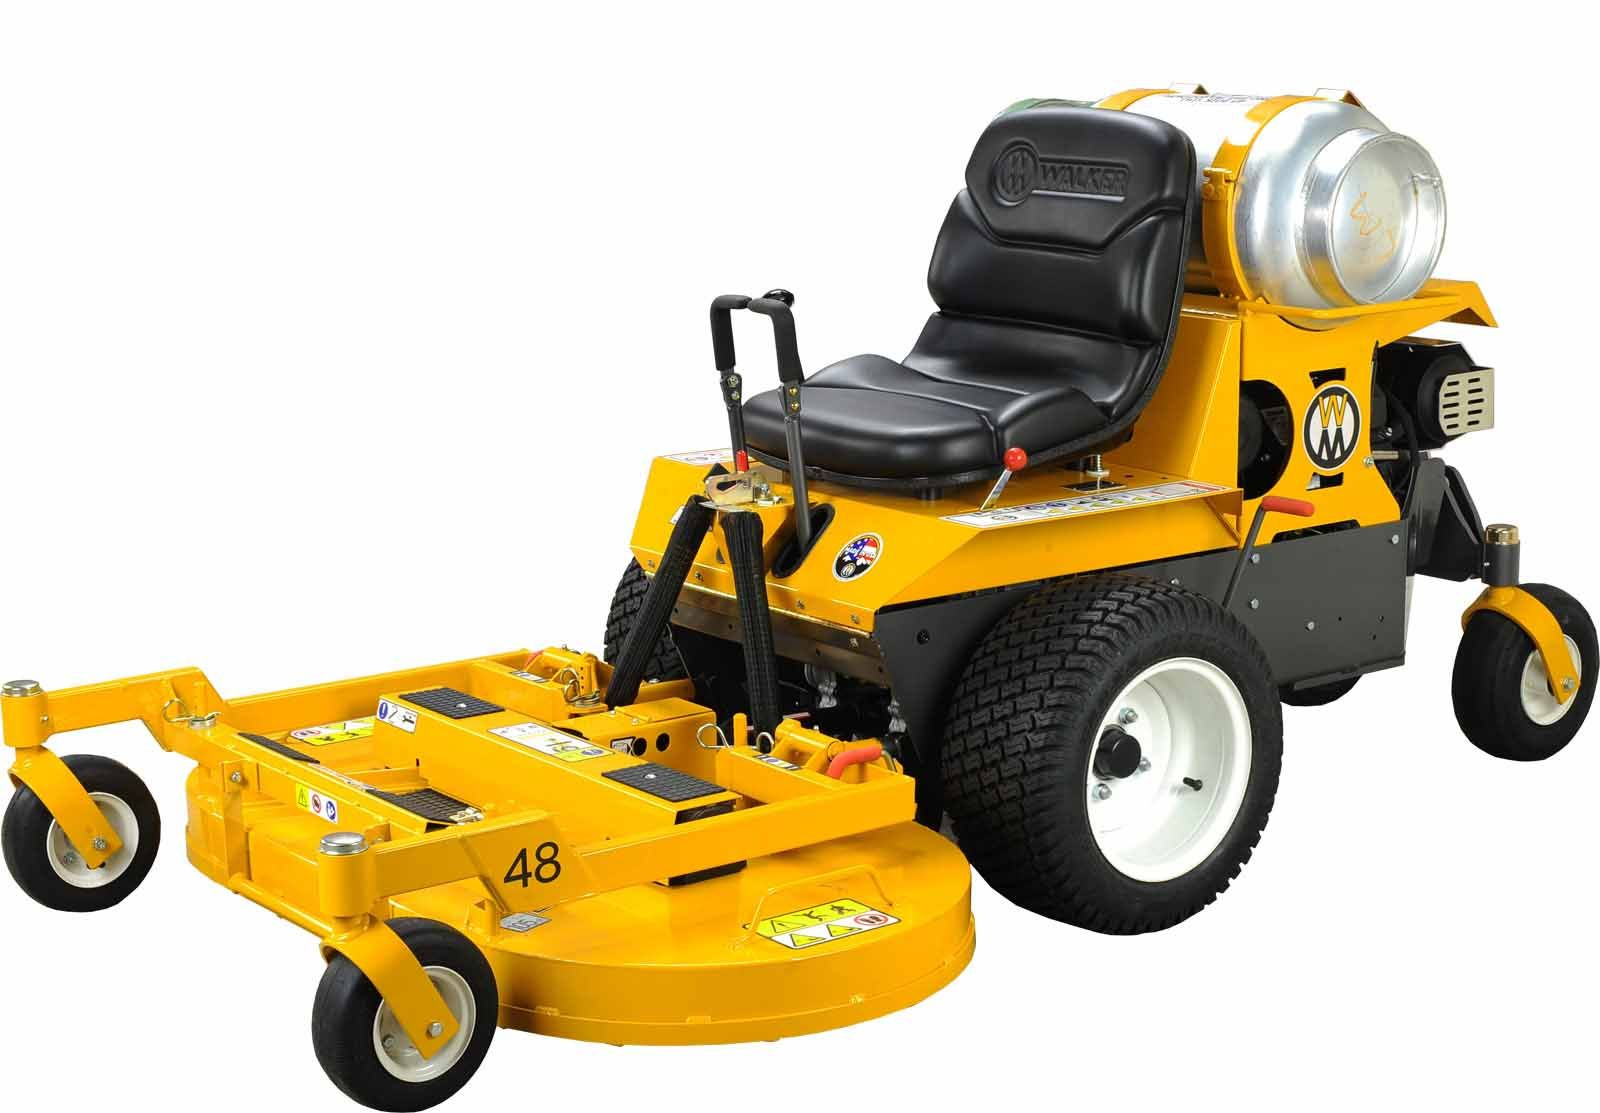 Walker Mowers MB25p Side Discharge (Non-Collection) Propane EFI Mower 25HP